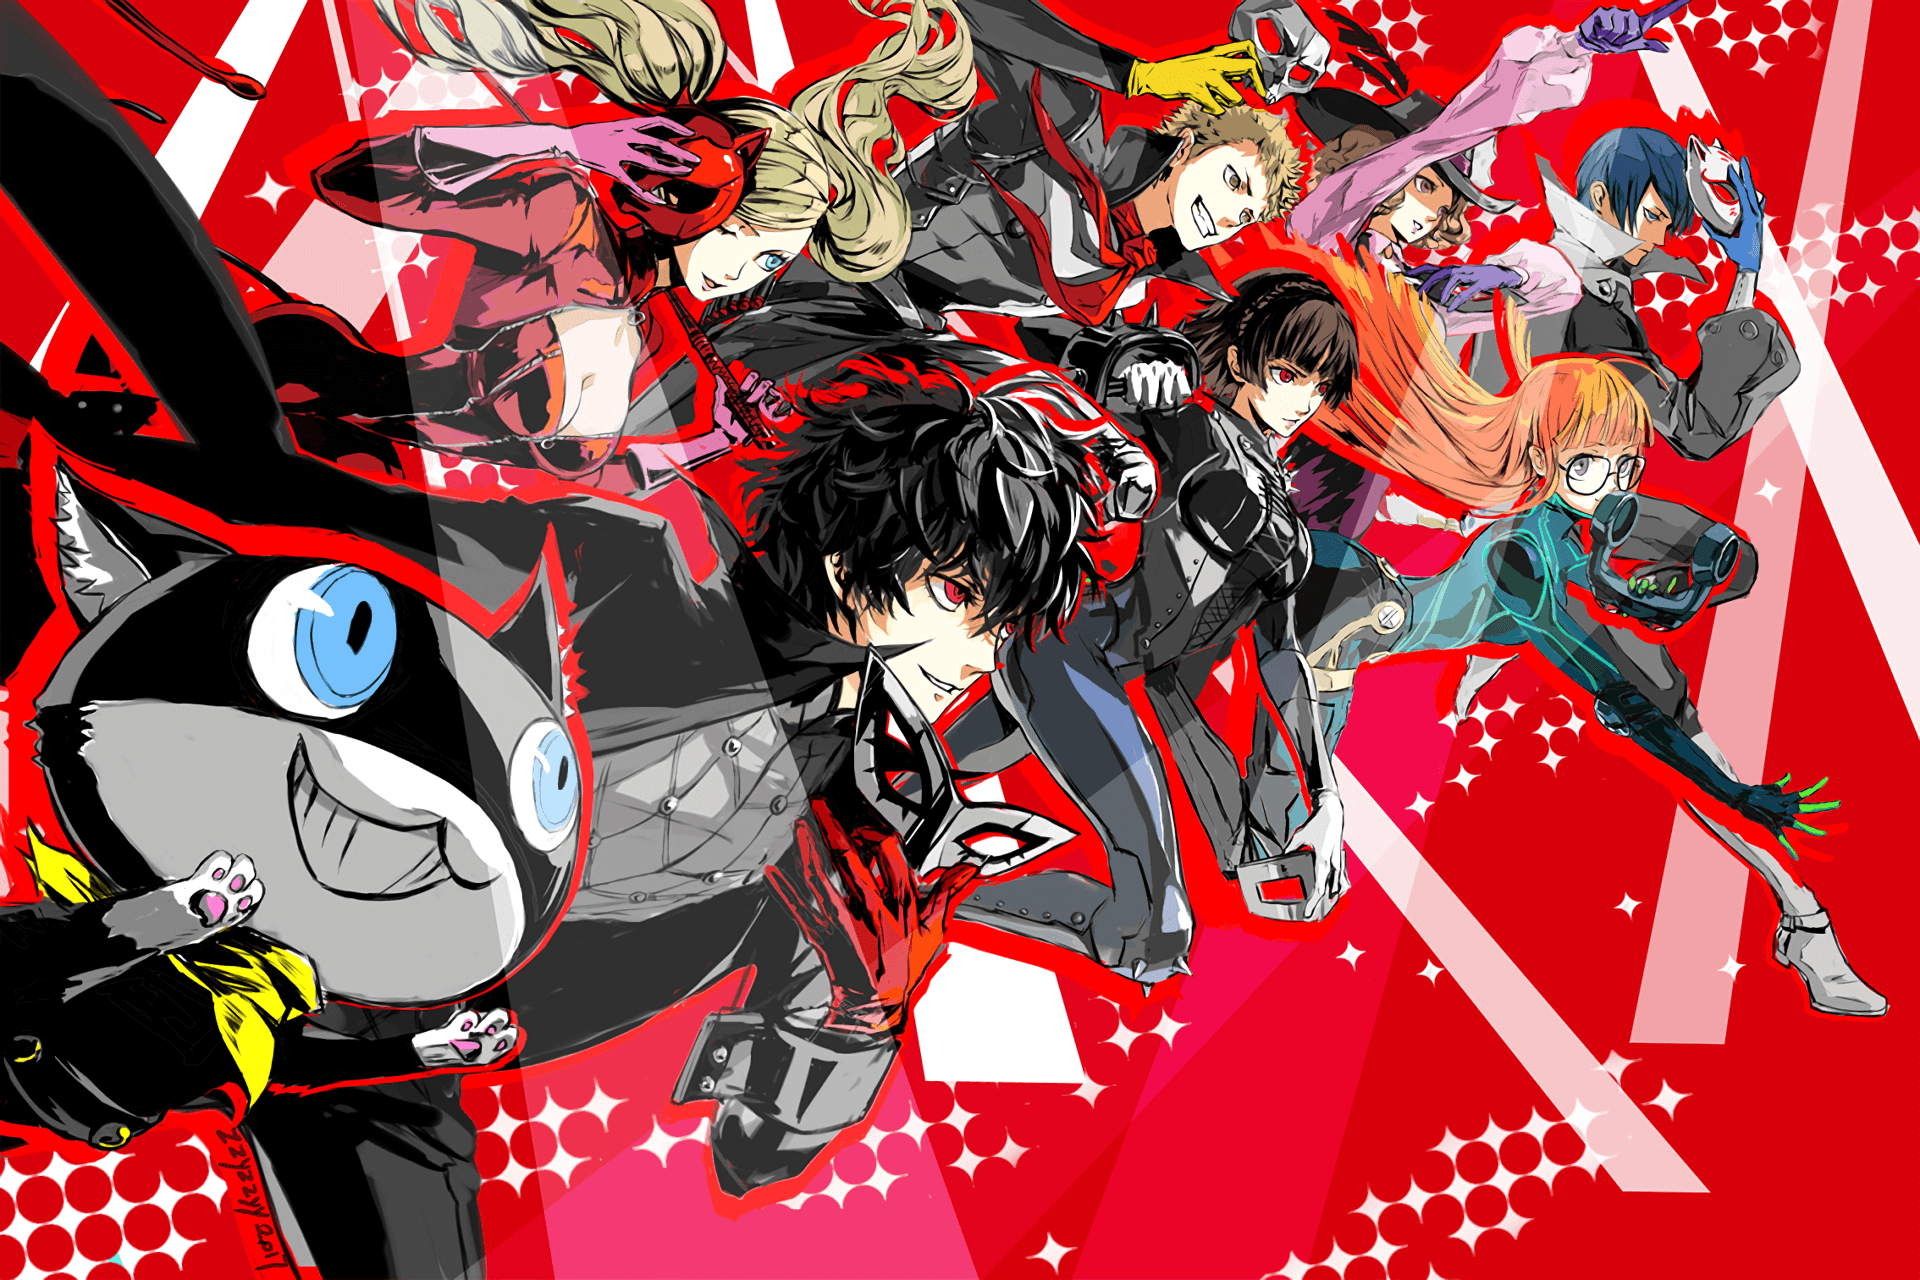 persona 5 strikers video game wallpaper 73108